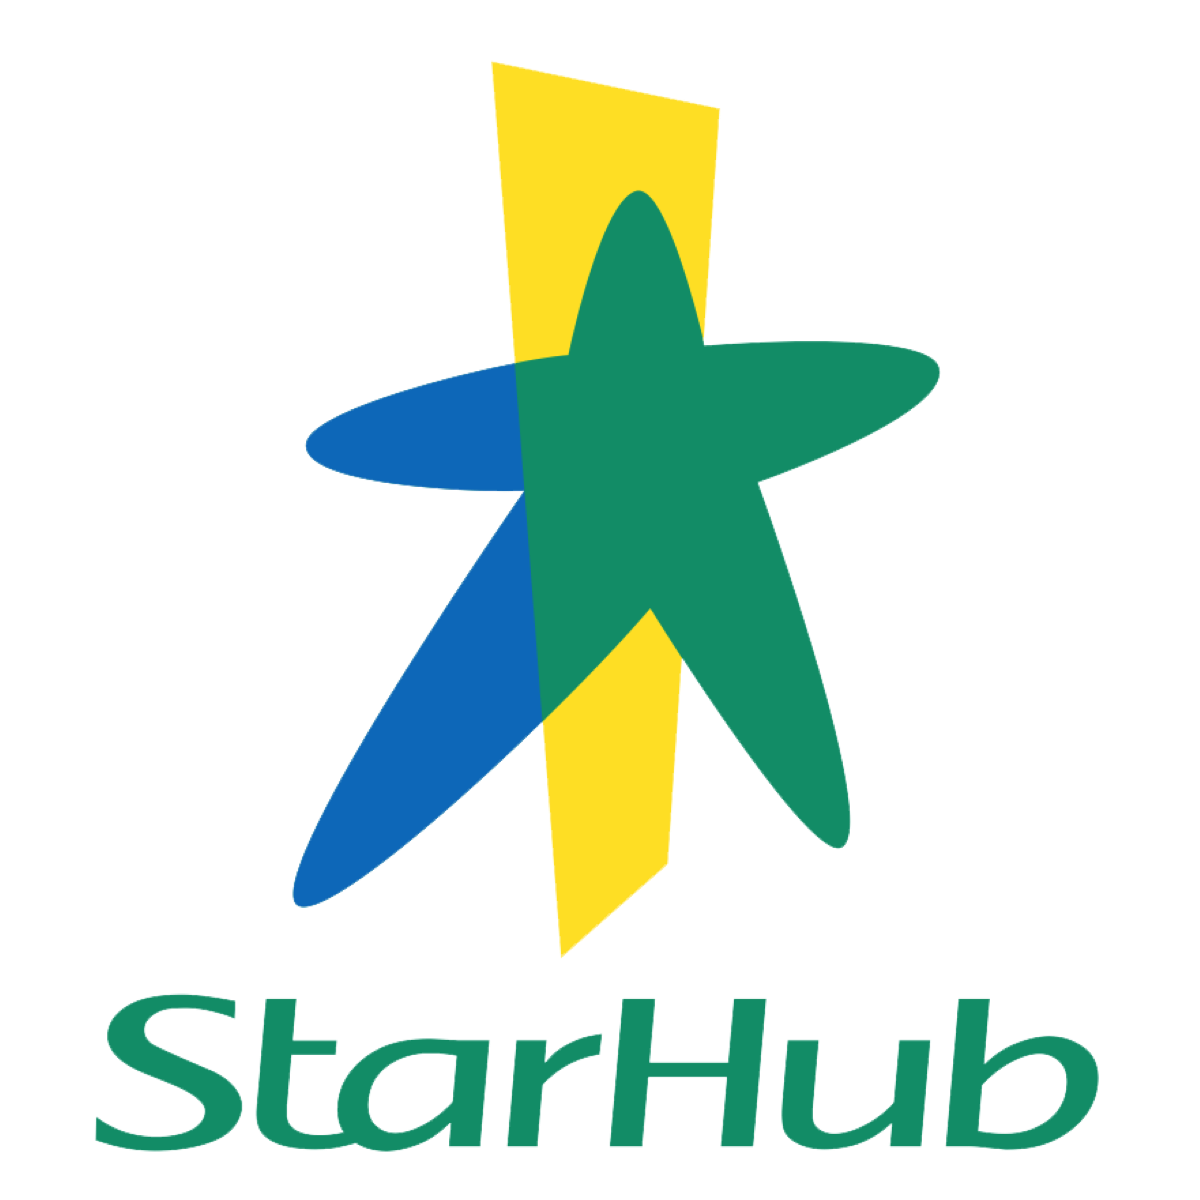 StarHub (STH SP) - UOB Kay Hian 2017-03-09: Arduous Journey, Uphill Battle; Downgrade To HOLD